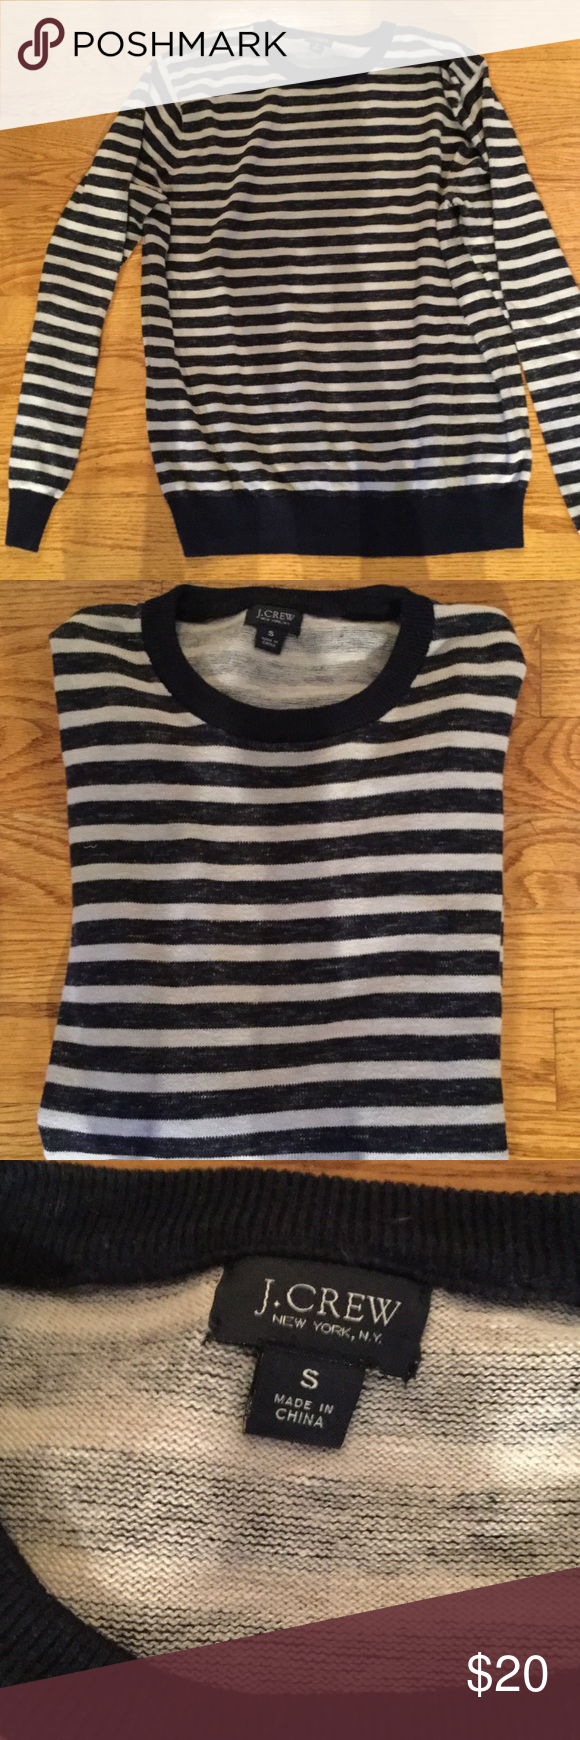 Top 100% cotton, sweatshirt, almost like a sweater. Beautiful. Black and Tan stripe with solid black cuffs. Excellent condition J. Crew Tops Sweatshirts & Hoodies